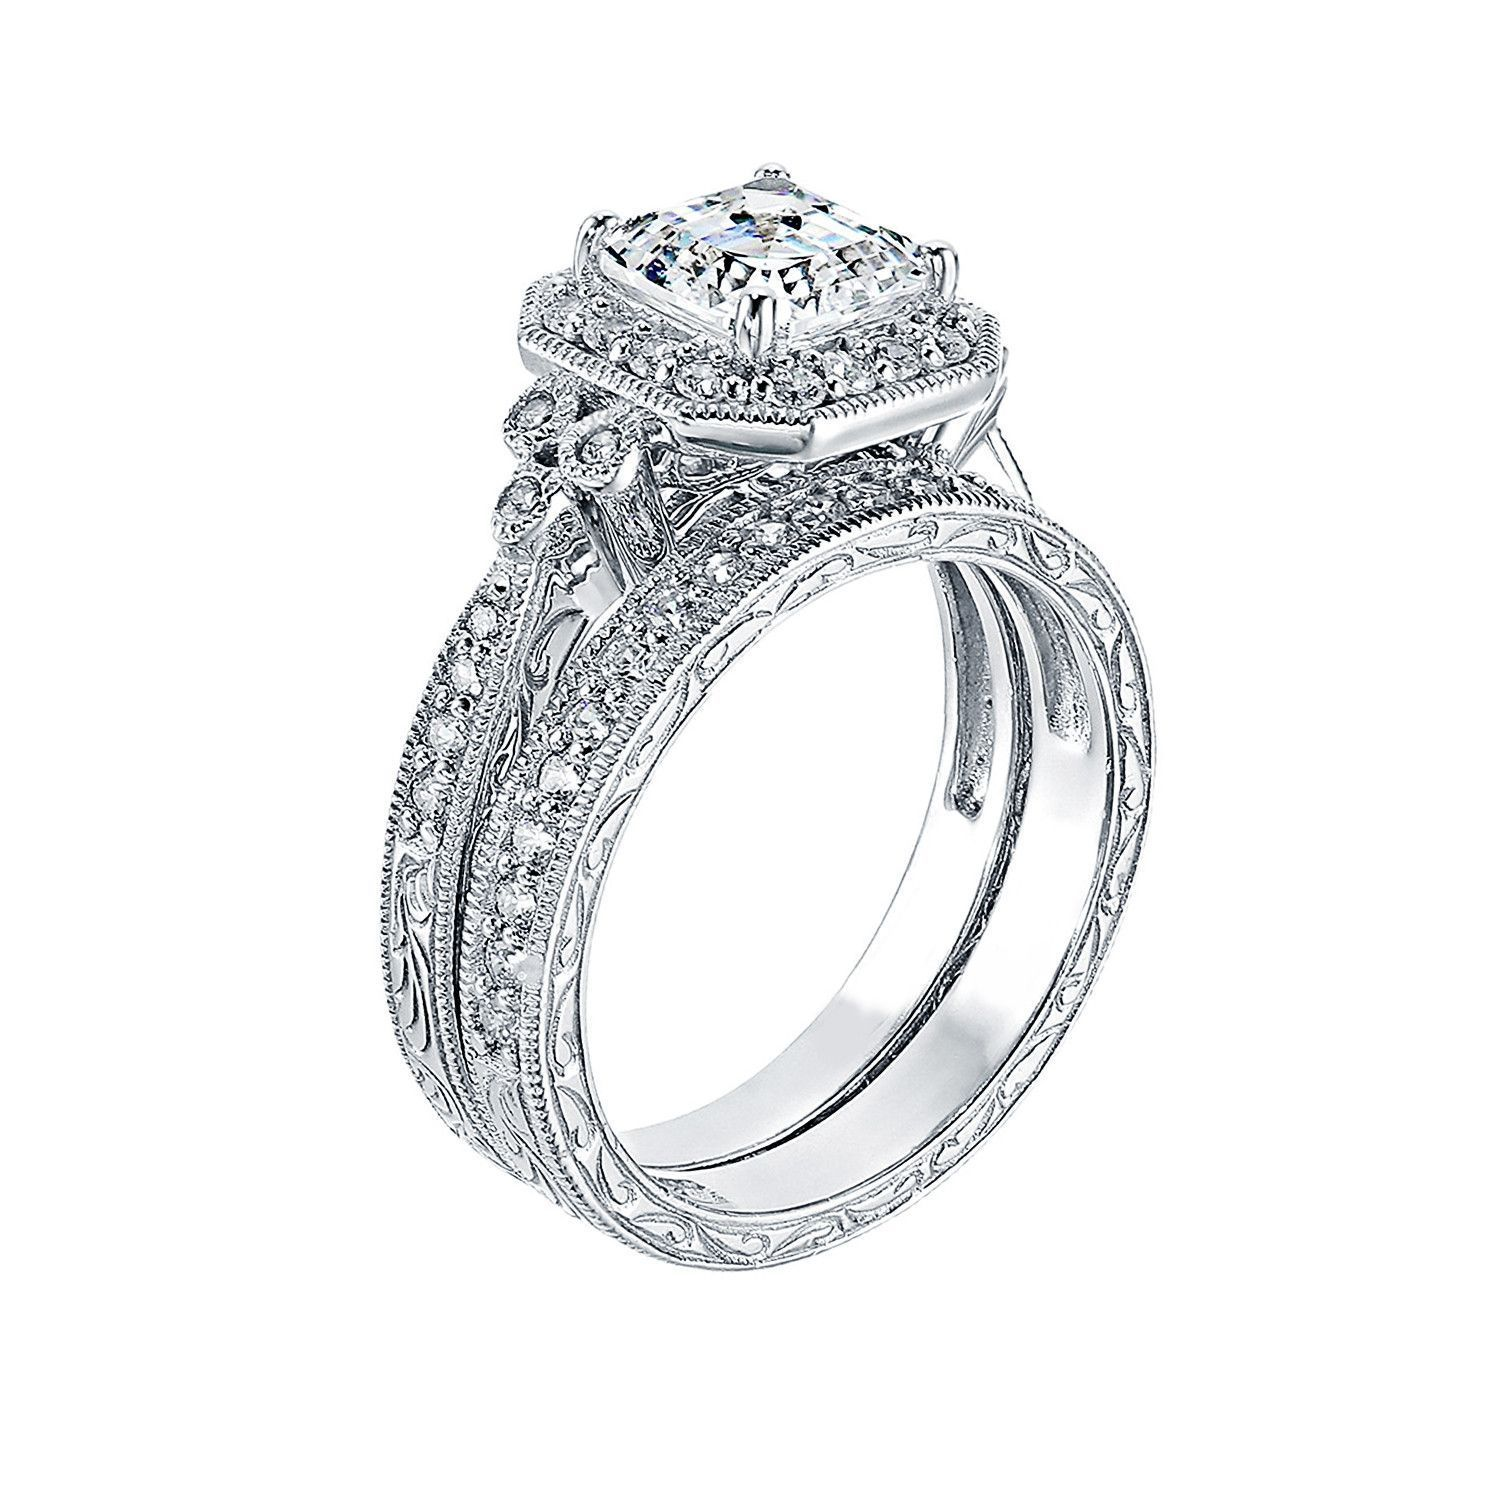 b67ee42f0d8 Capture a classic vintage look and feel to this beautiful Asscher ...